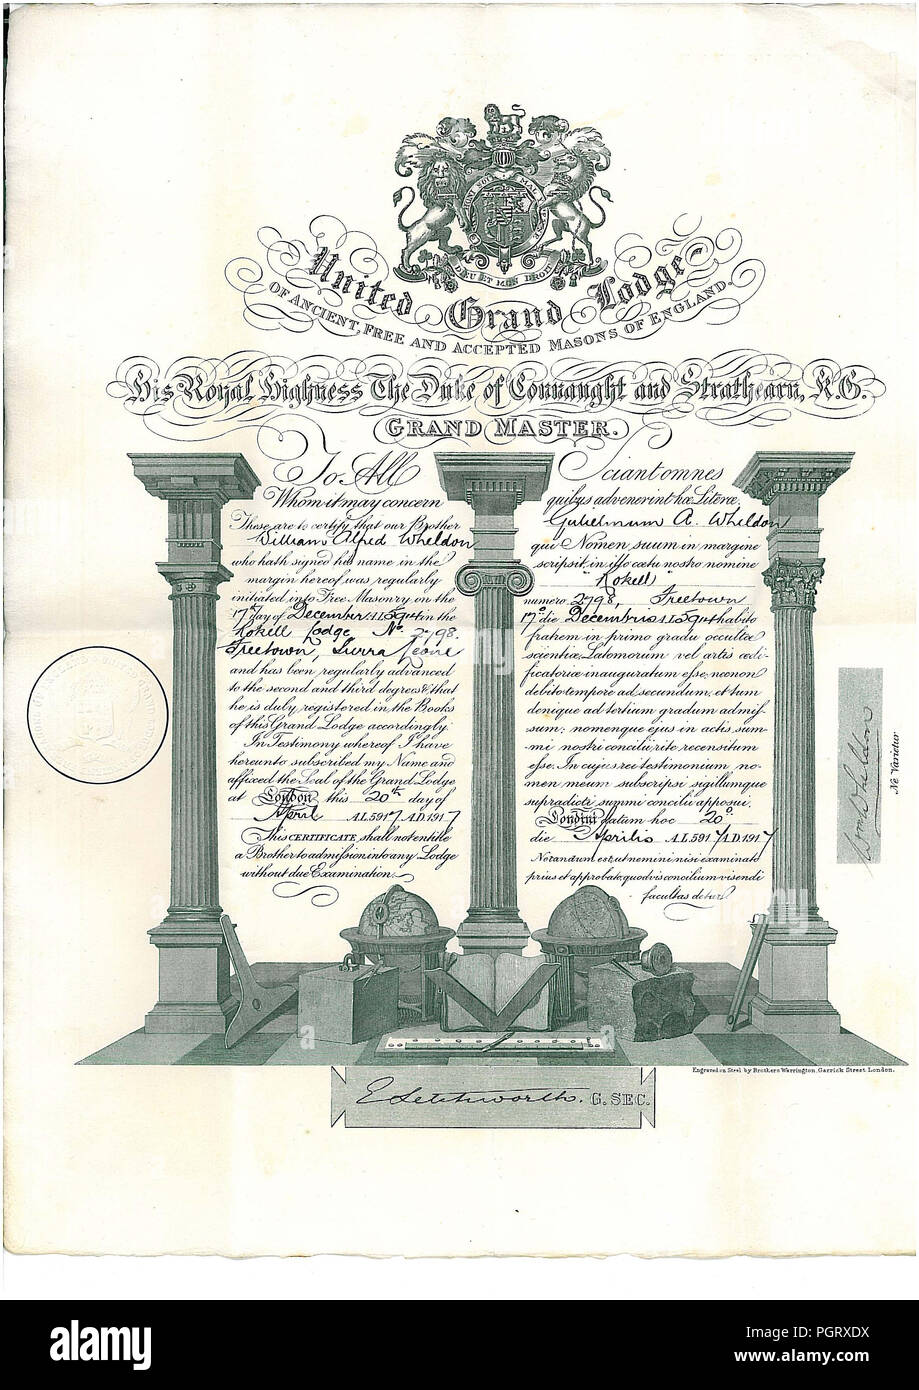 A Free Mason certificate admitting a William Wheldon as a mason in to the lodge at Rokell Lodge in Sierra Leone dated 1917 - Stock Image